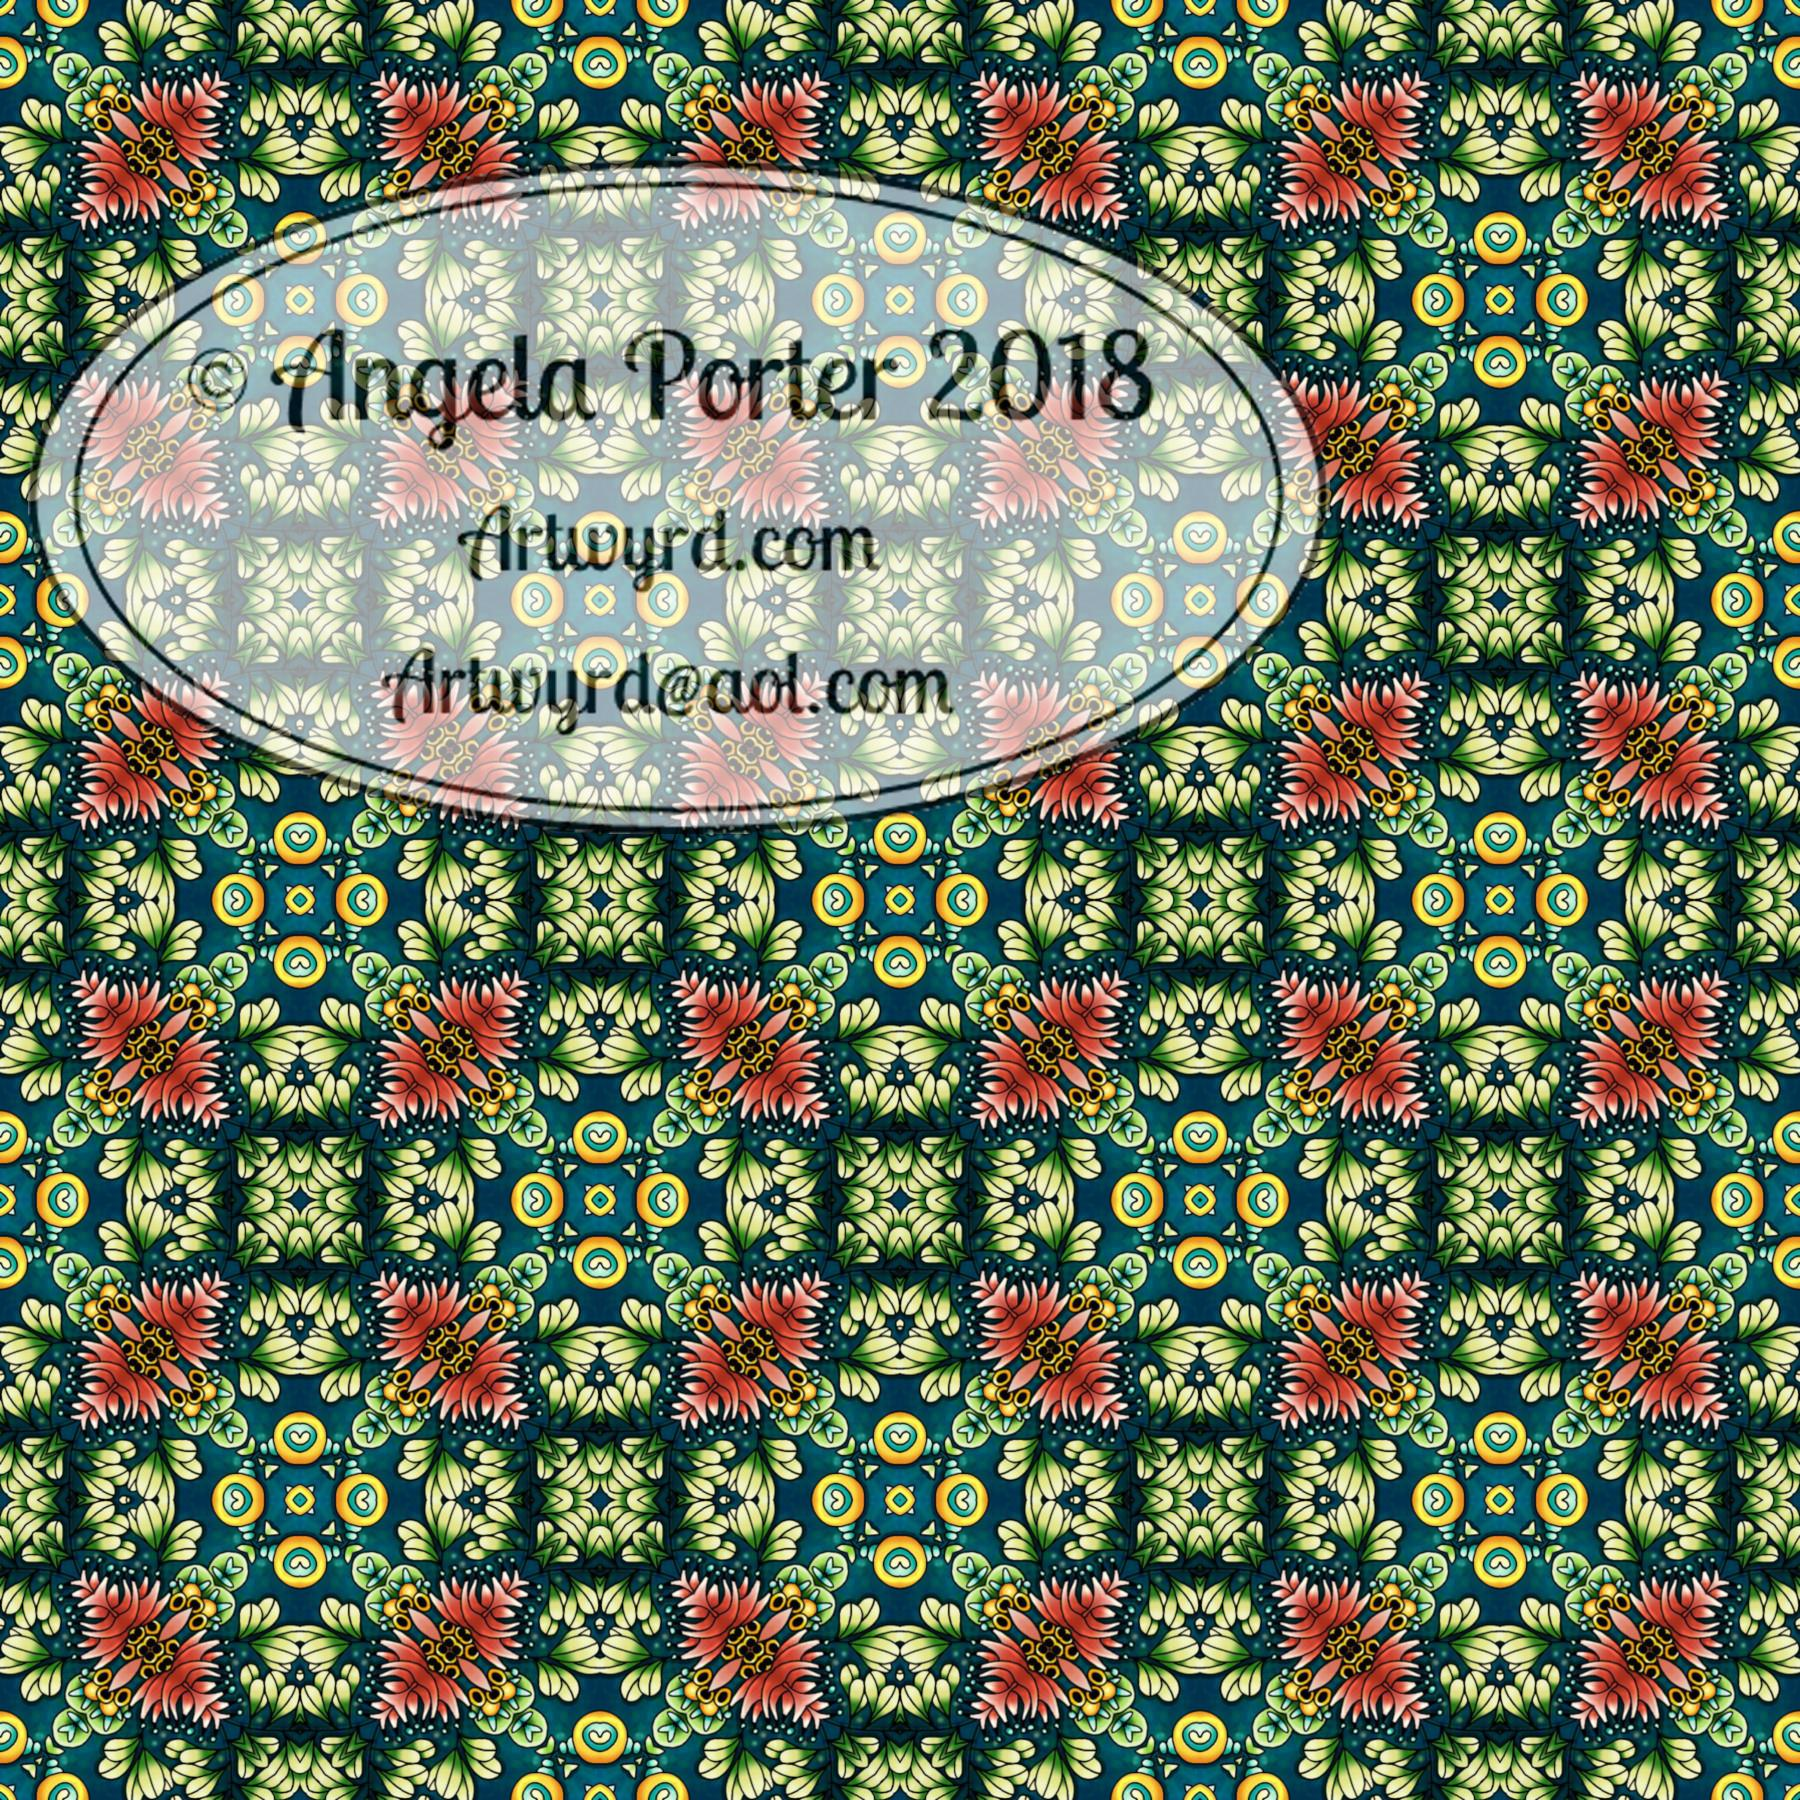 Angela Porter Repeating pattern 20 September 2018 04